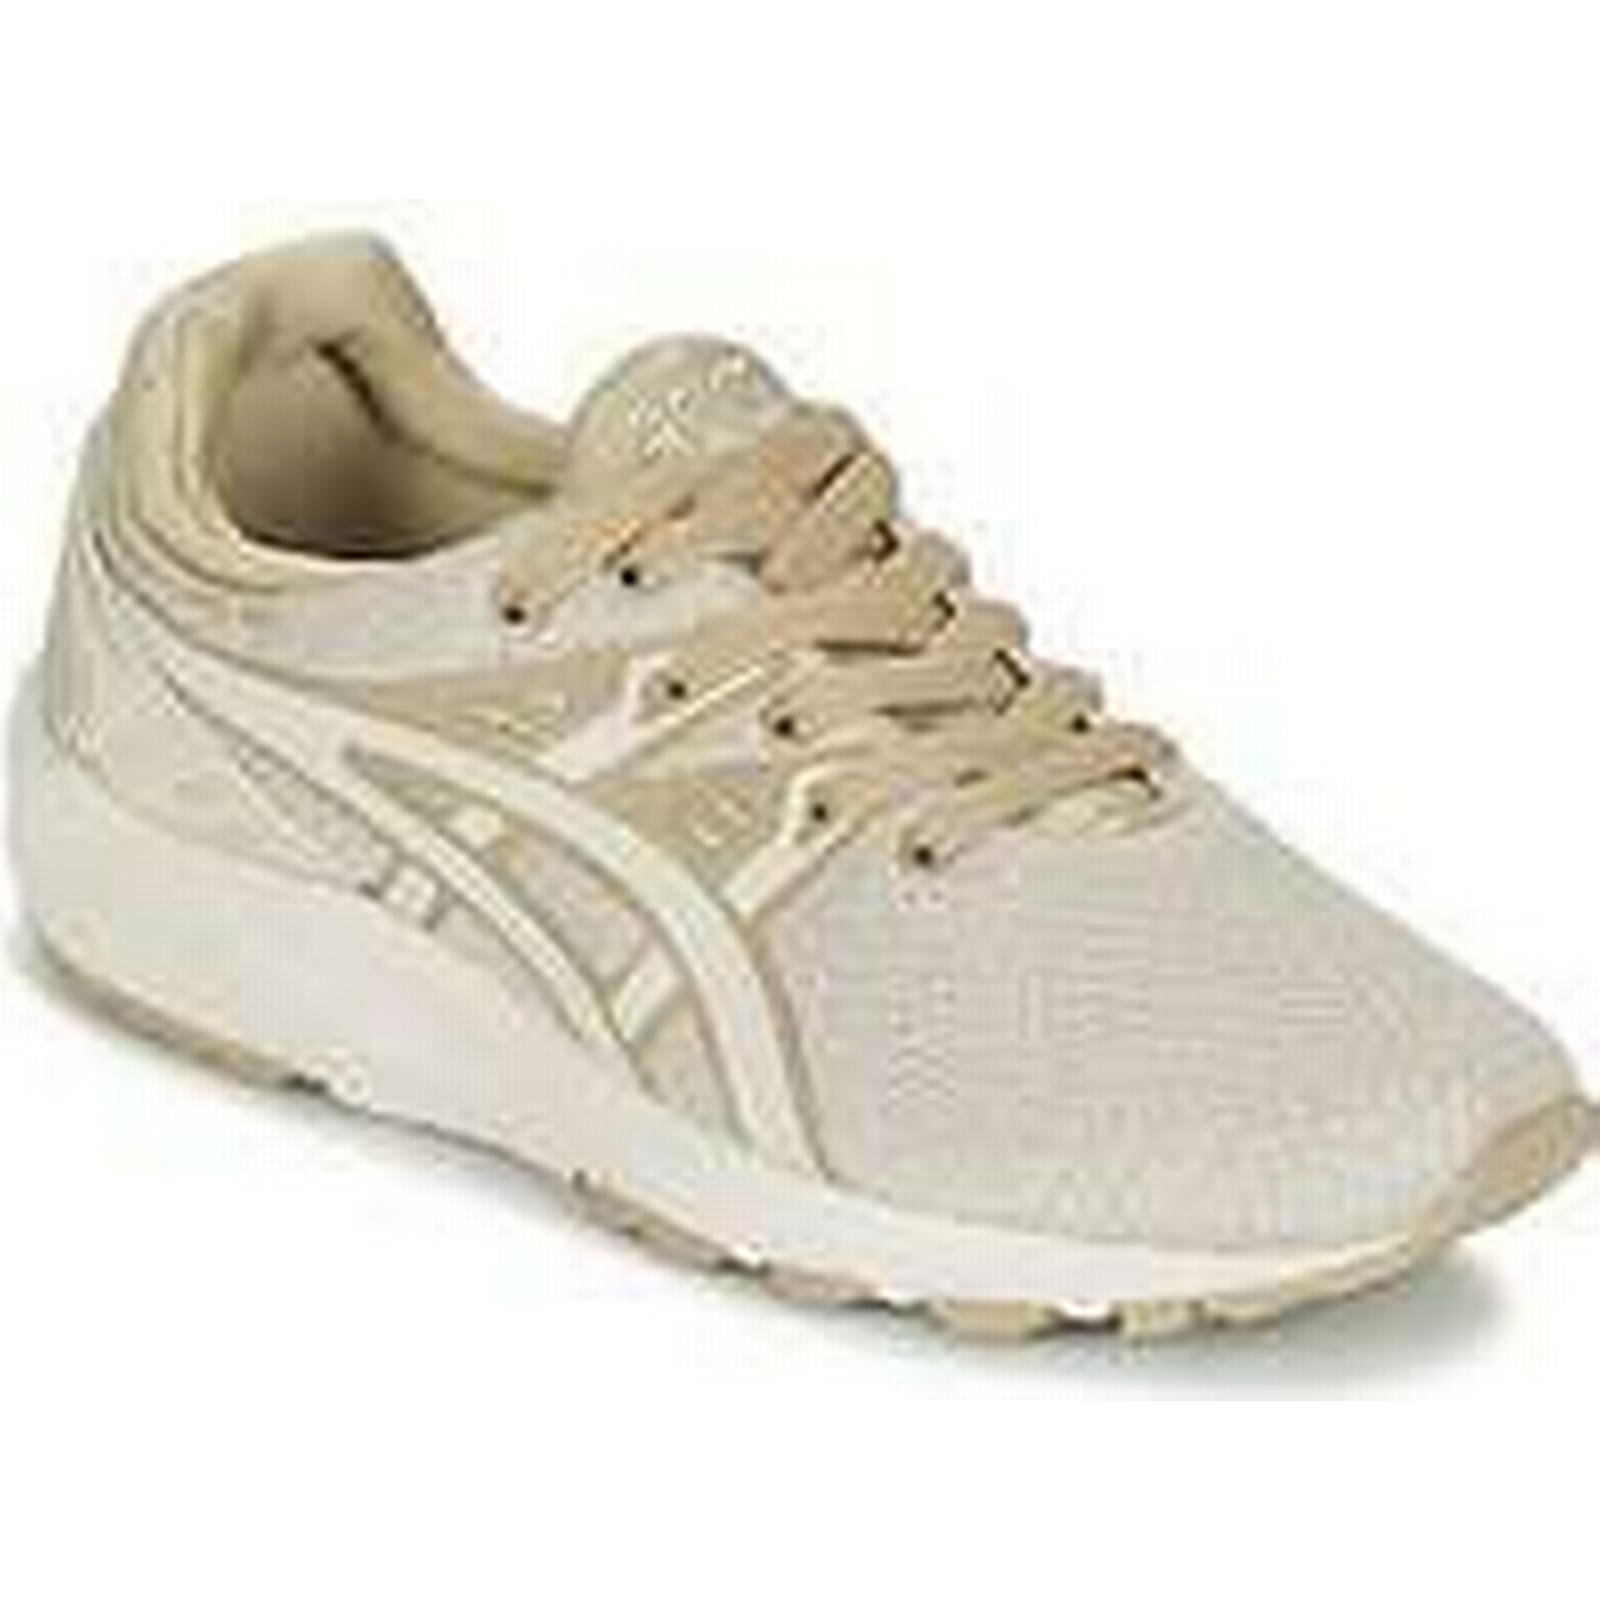 Spartoo.co.uk Asics Shoes GEL-KAYANO TRAINER EVO men's Shoes Asics (Trainers) in Beige f23b29